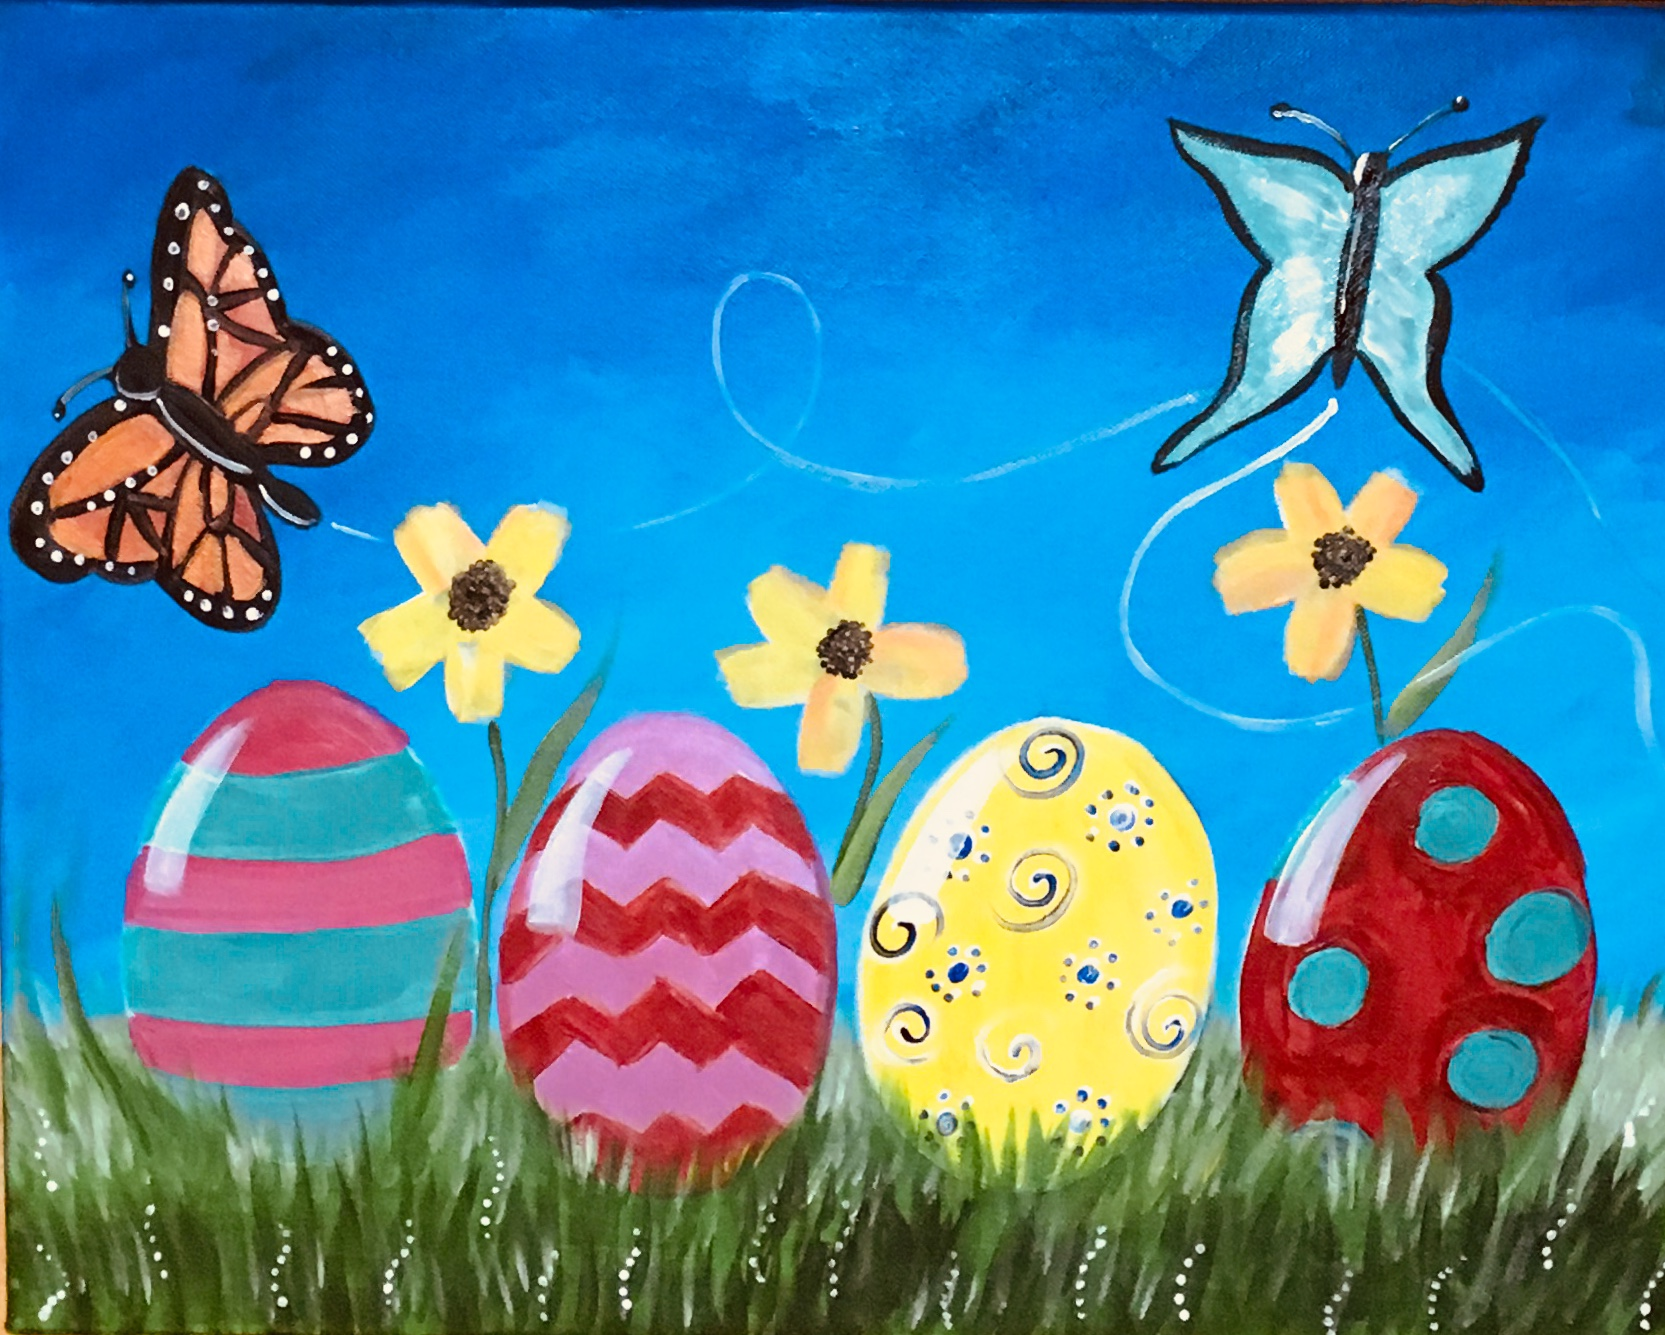 Beginners And Kids Can Learn How To Paint This Easy Easter Egg Landscape With Acrylic